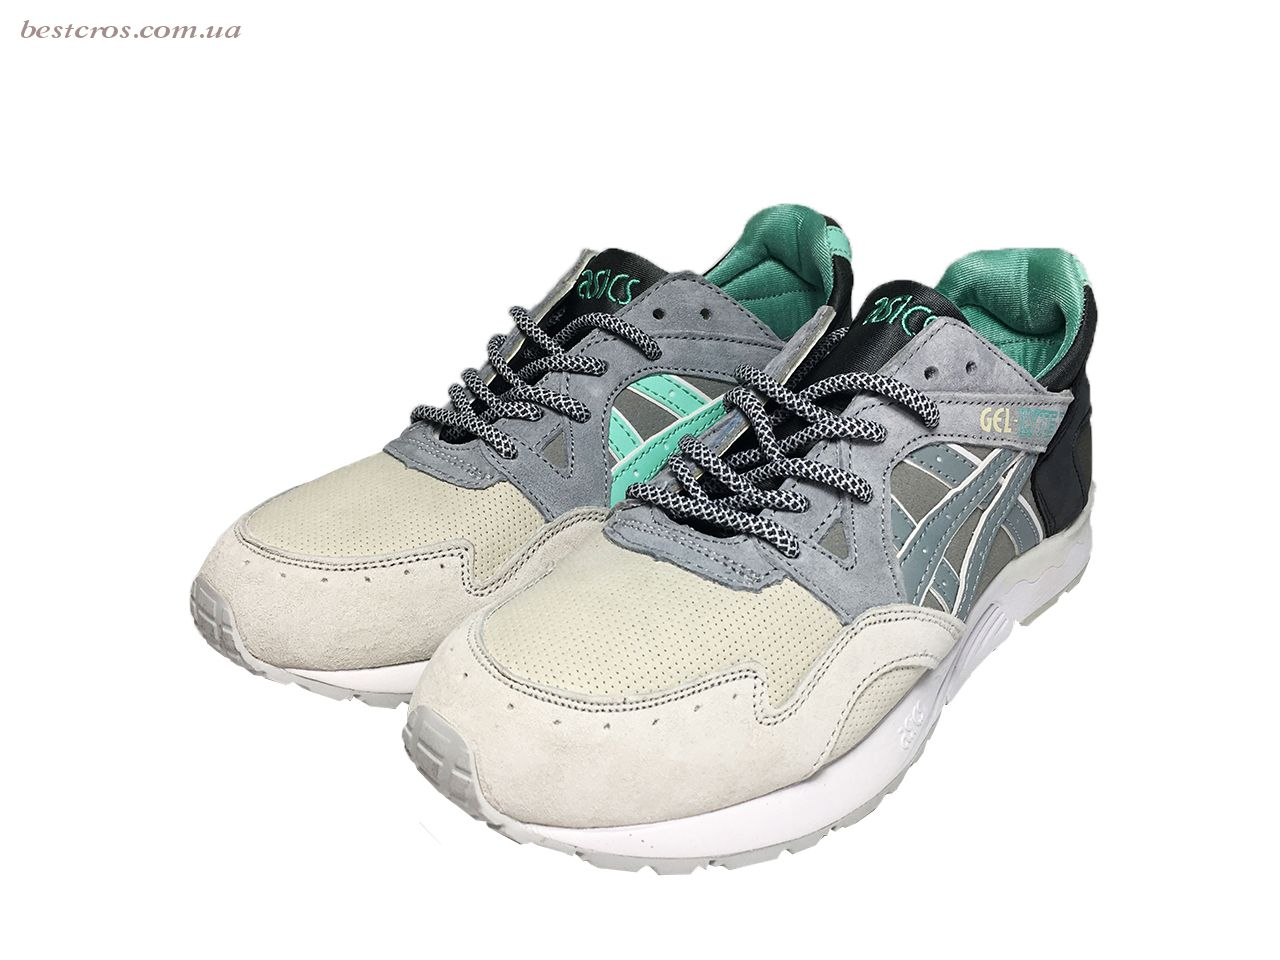 Мужские кроссовки Asics Gel Cream/Grey/Black/White/Light green - фото №5